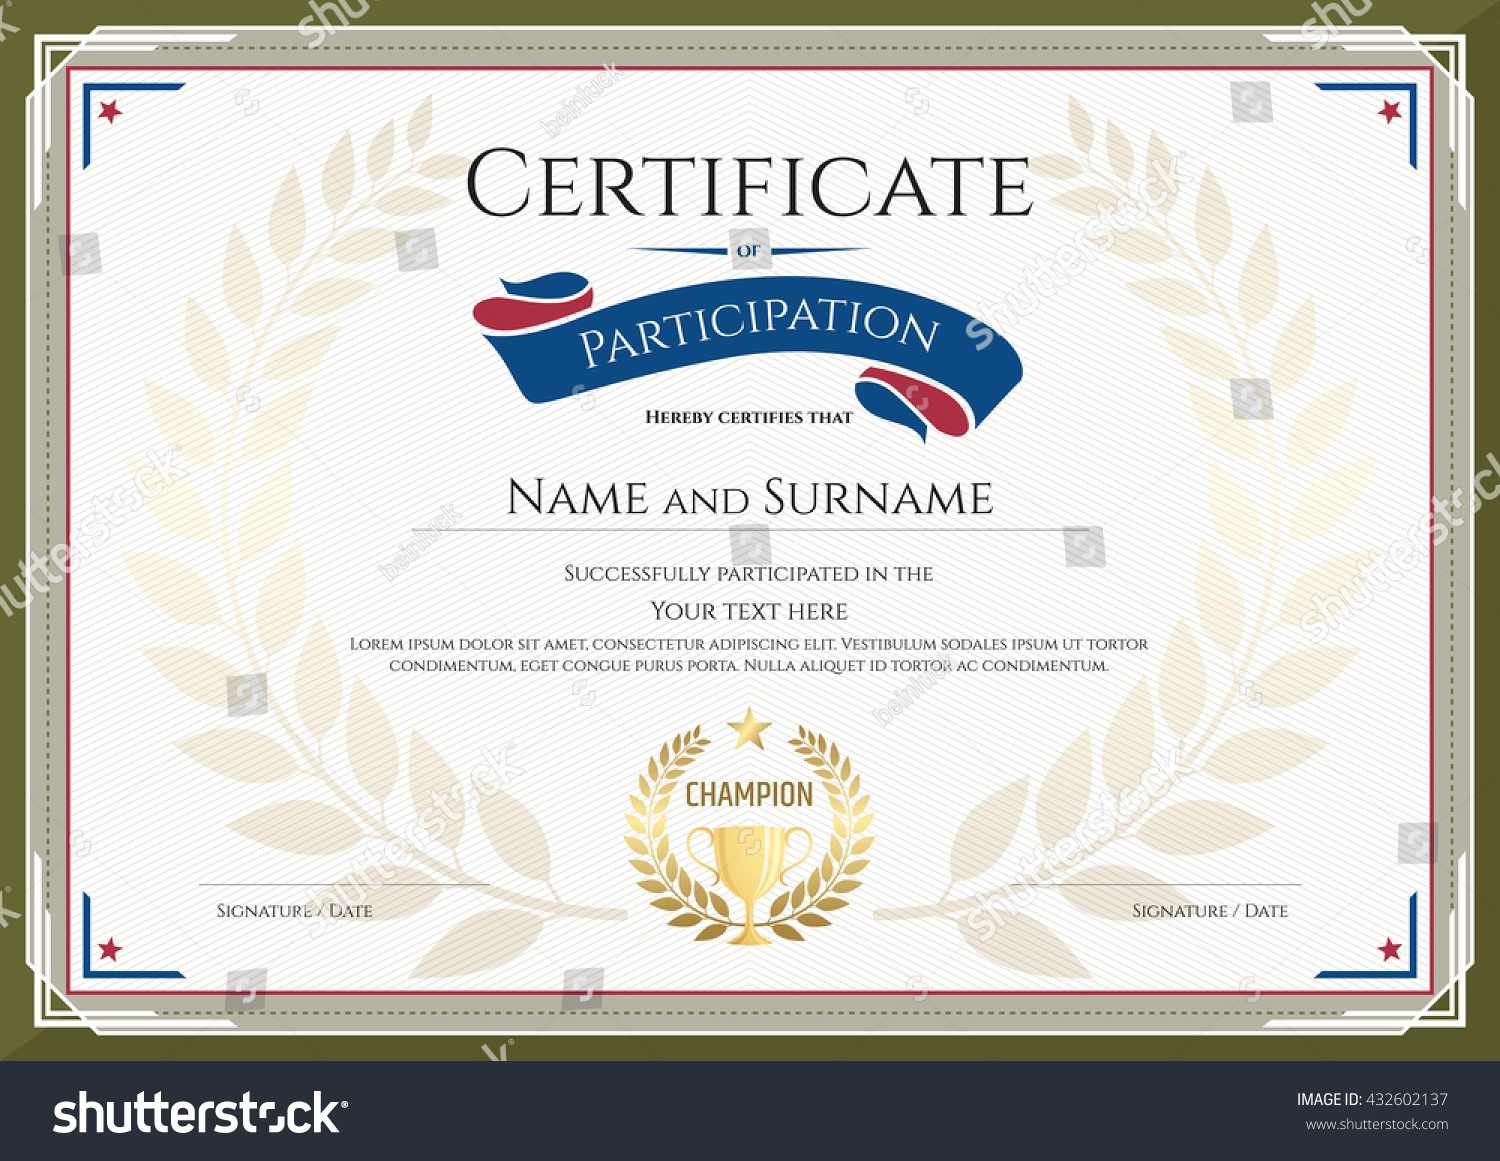 Certificate Participation Template Green Border Gold Stock Photo